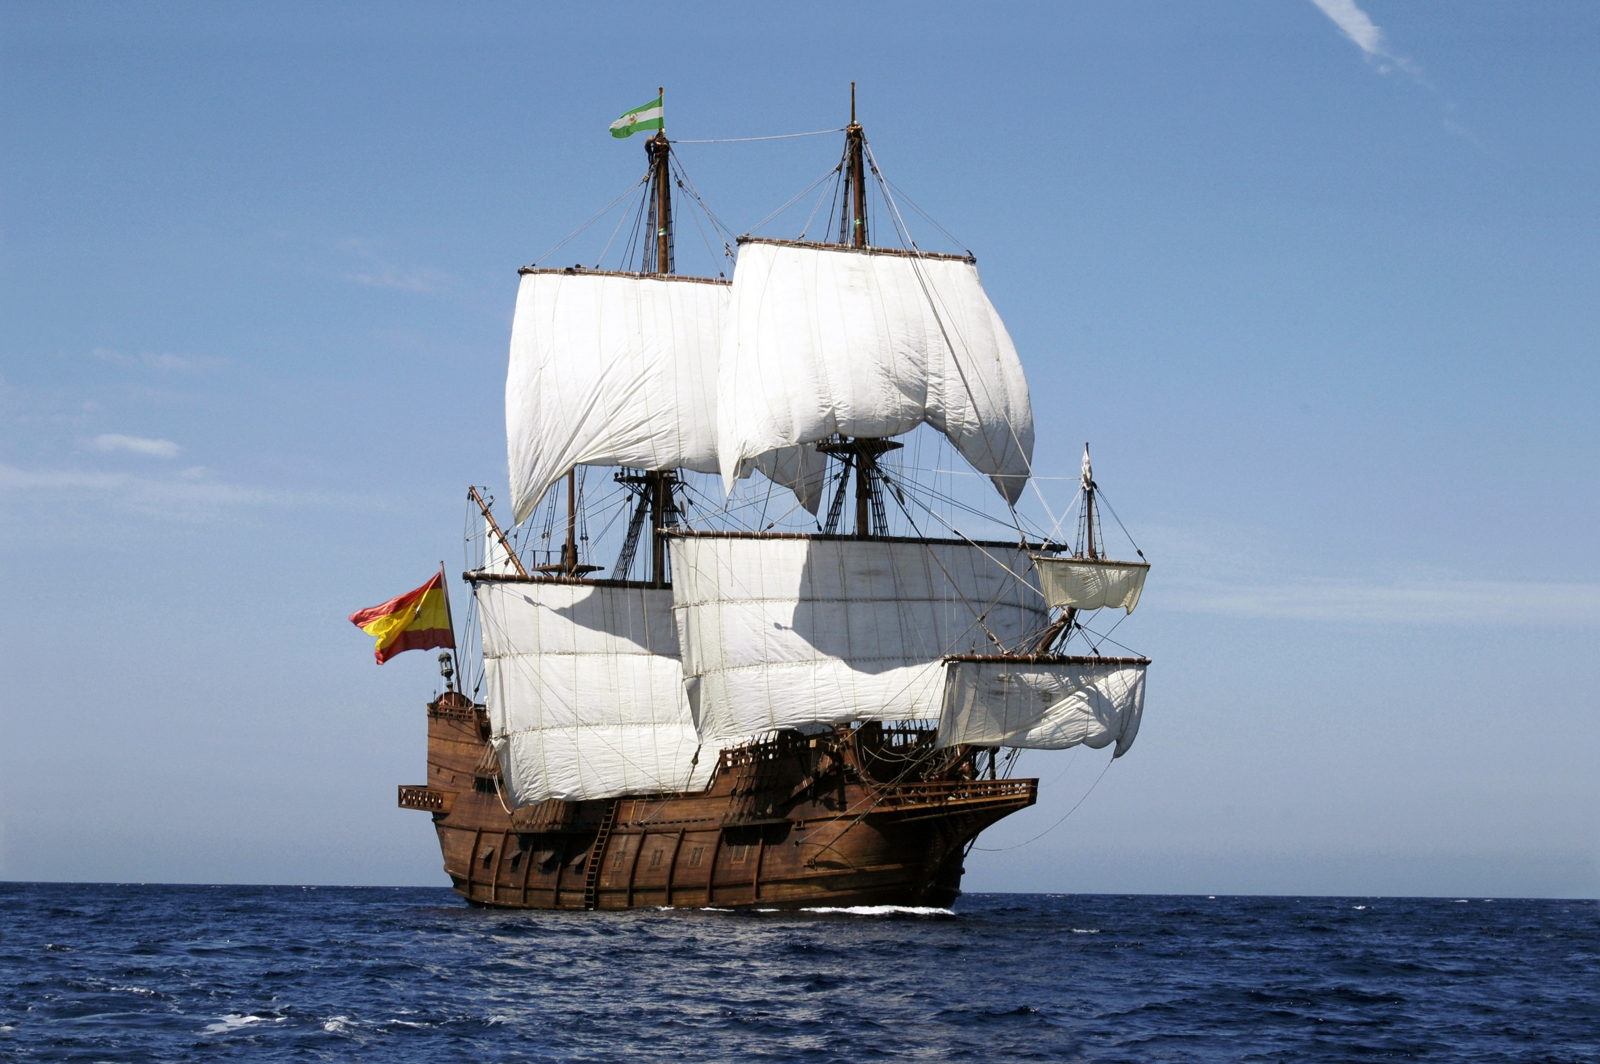 El Galeón, at sea, sailed from Spain to Florida to salute 500 years since Spaniard Juan Ponce de León claimed La Florida for Spain in 1513. The historic ship will make port in four Florida cities this spring for public tours. Credit: Nao Victoria Foundation, or Fundación Nao Victoria